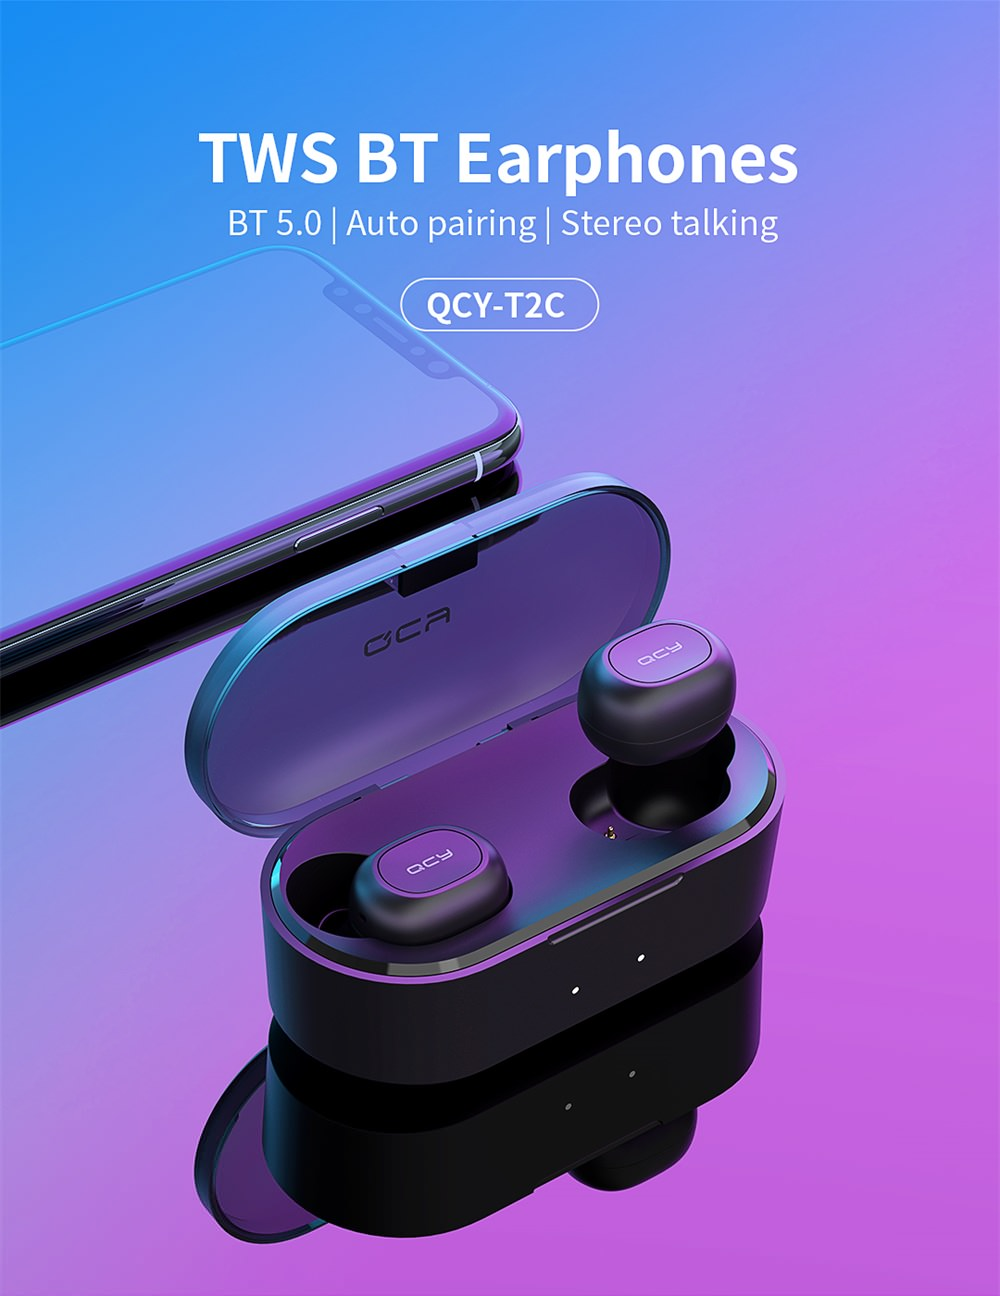 [bluetooth 5.0] QCY T2C Mini TWS Earphone HiFi Magnetic Bilateral Call Auto Pairing Stereo Waterproof Headphone from xiaomi Eco-System